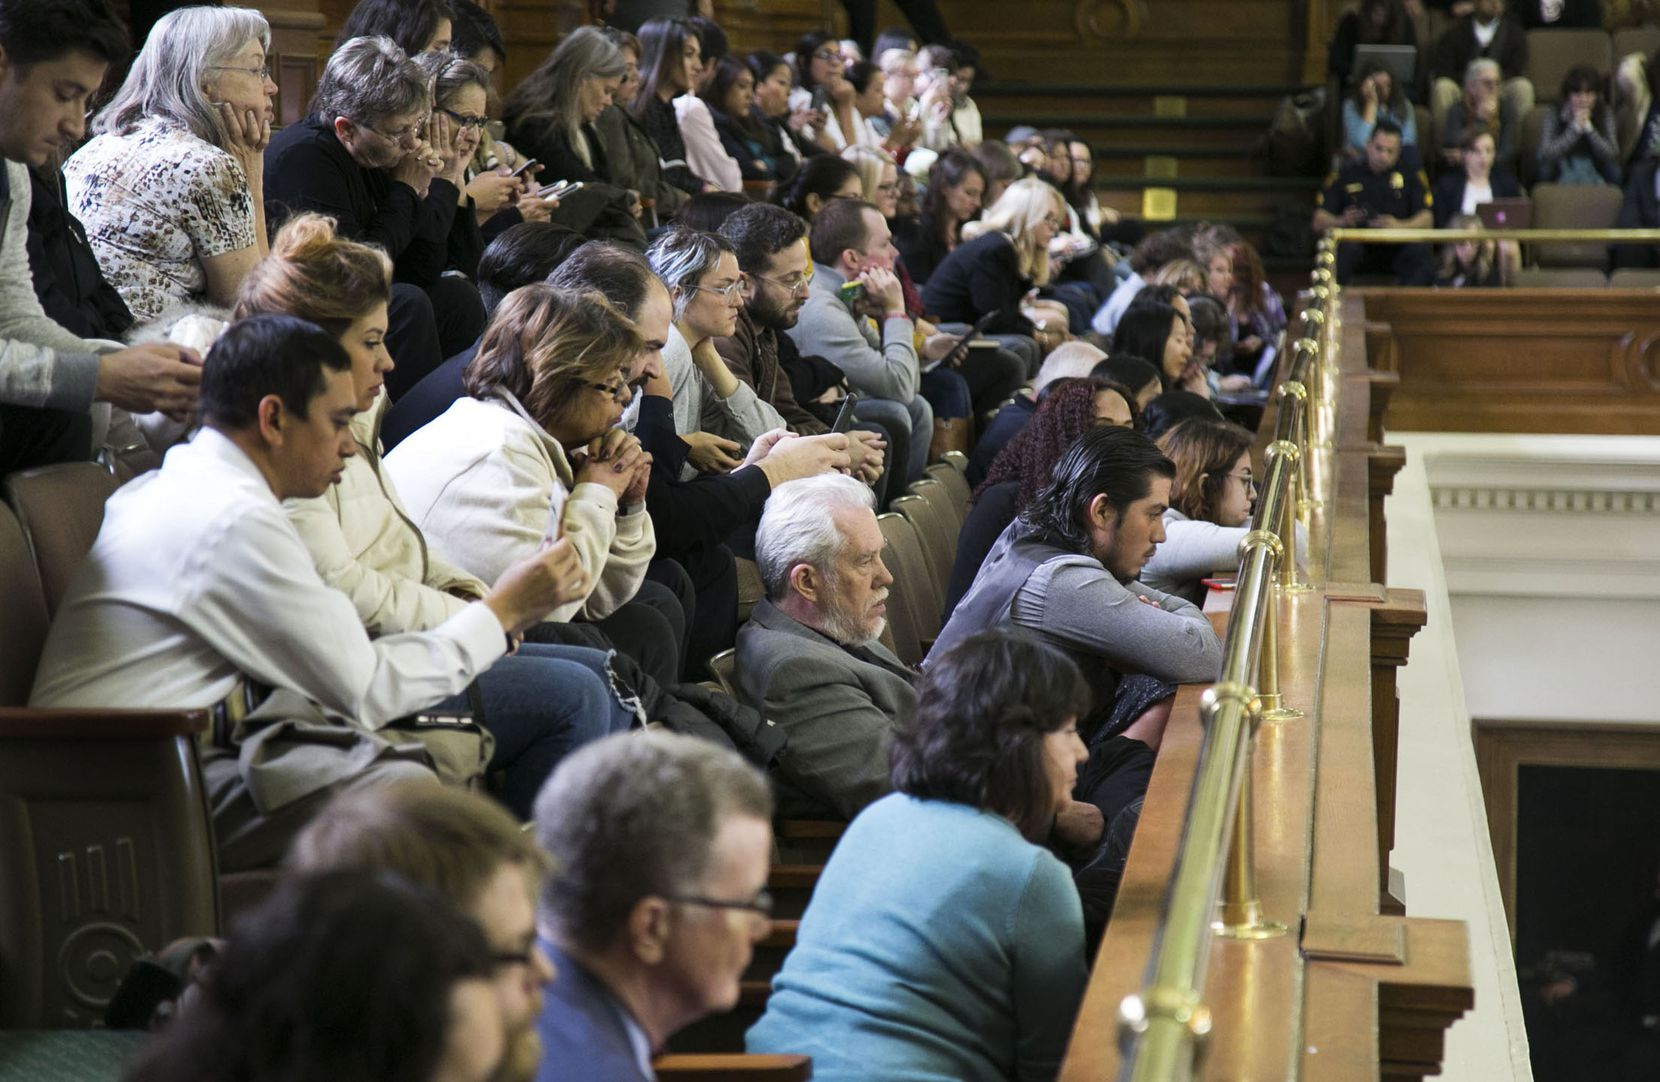 People filled the gallery at the Texas Capitol on Thursday for a hearing in the Senate on a bill to ban so-called sanctuary cities. (Kelly West/Austin American-Statesman)